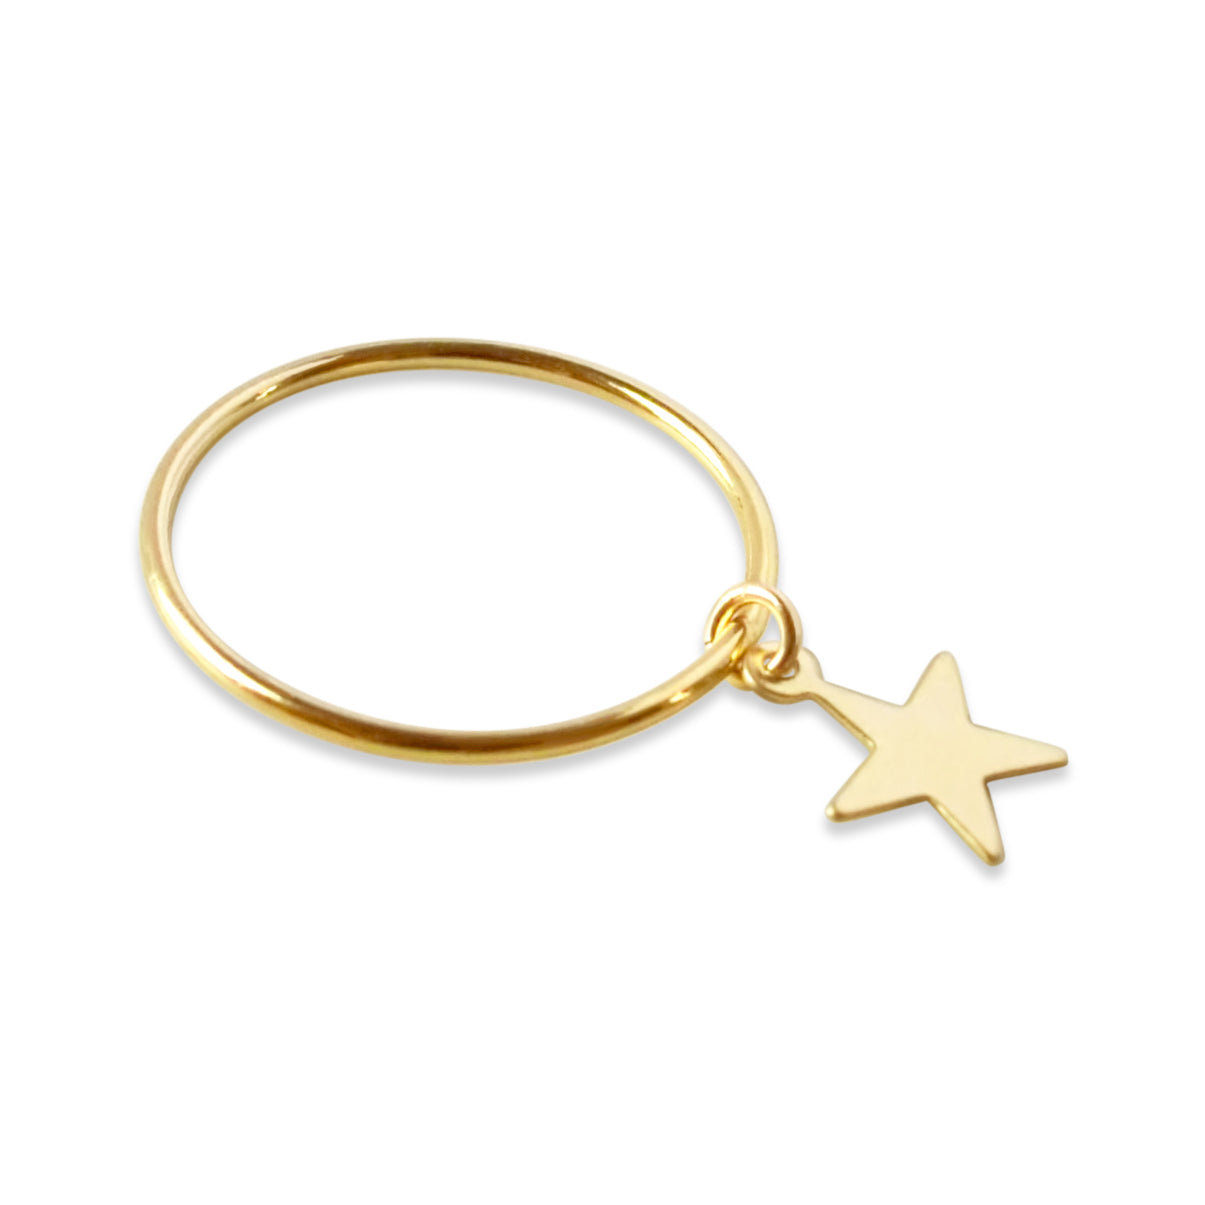 Cuppajyo Starlight Ring, Gold or Silver